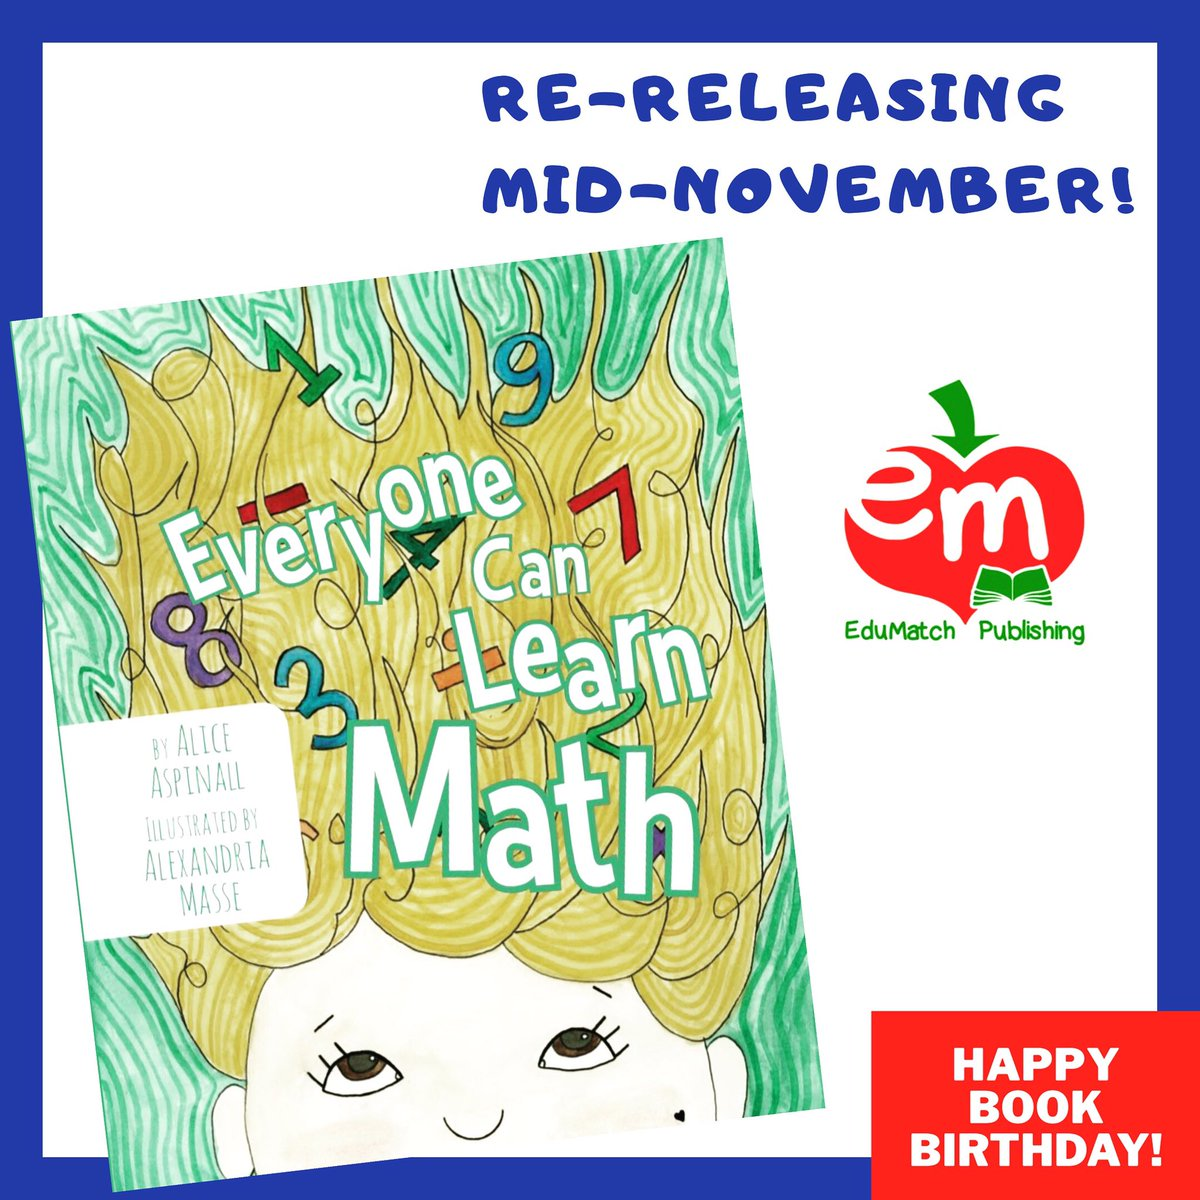 """test Twitter Media - Happy 1 Year Birthday to Everyone Can Learn Math!! One year ago, Everyone Can Learn Math was released - a beautiful picture book about Amy, who thinks she's not a """"math person."""" 1/n https://t.co/hEPPzcZYad"""